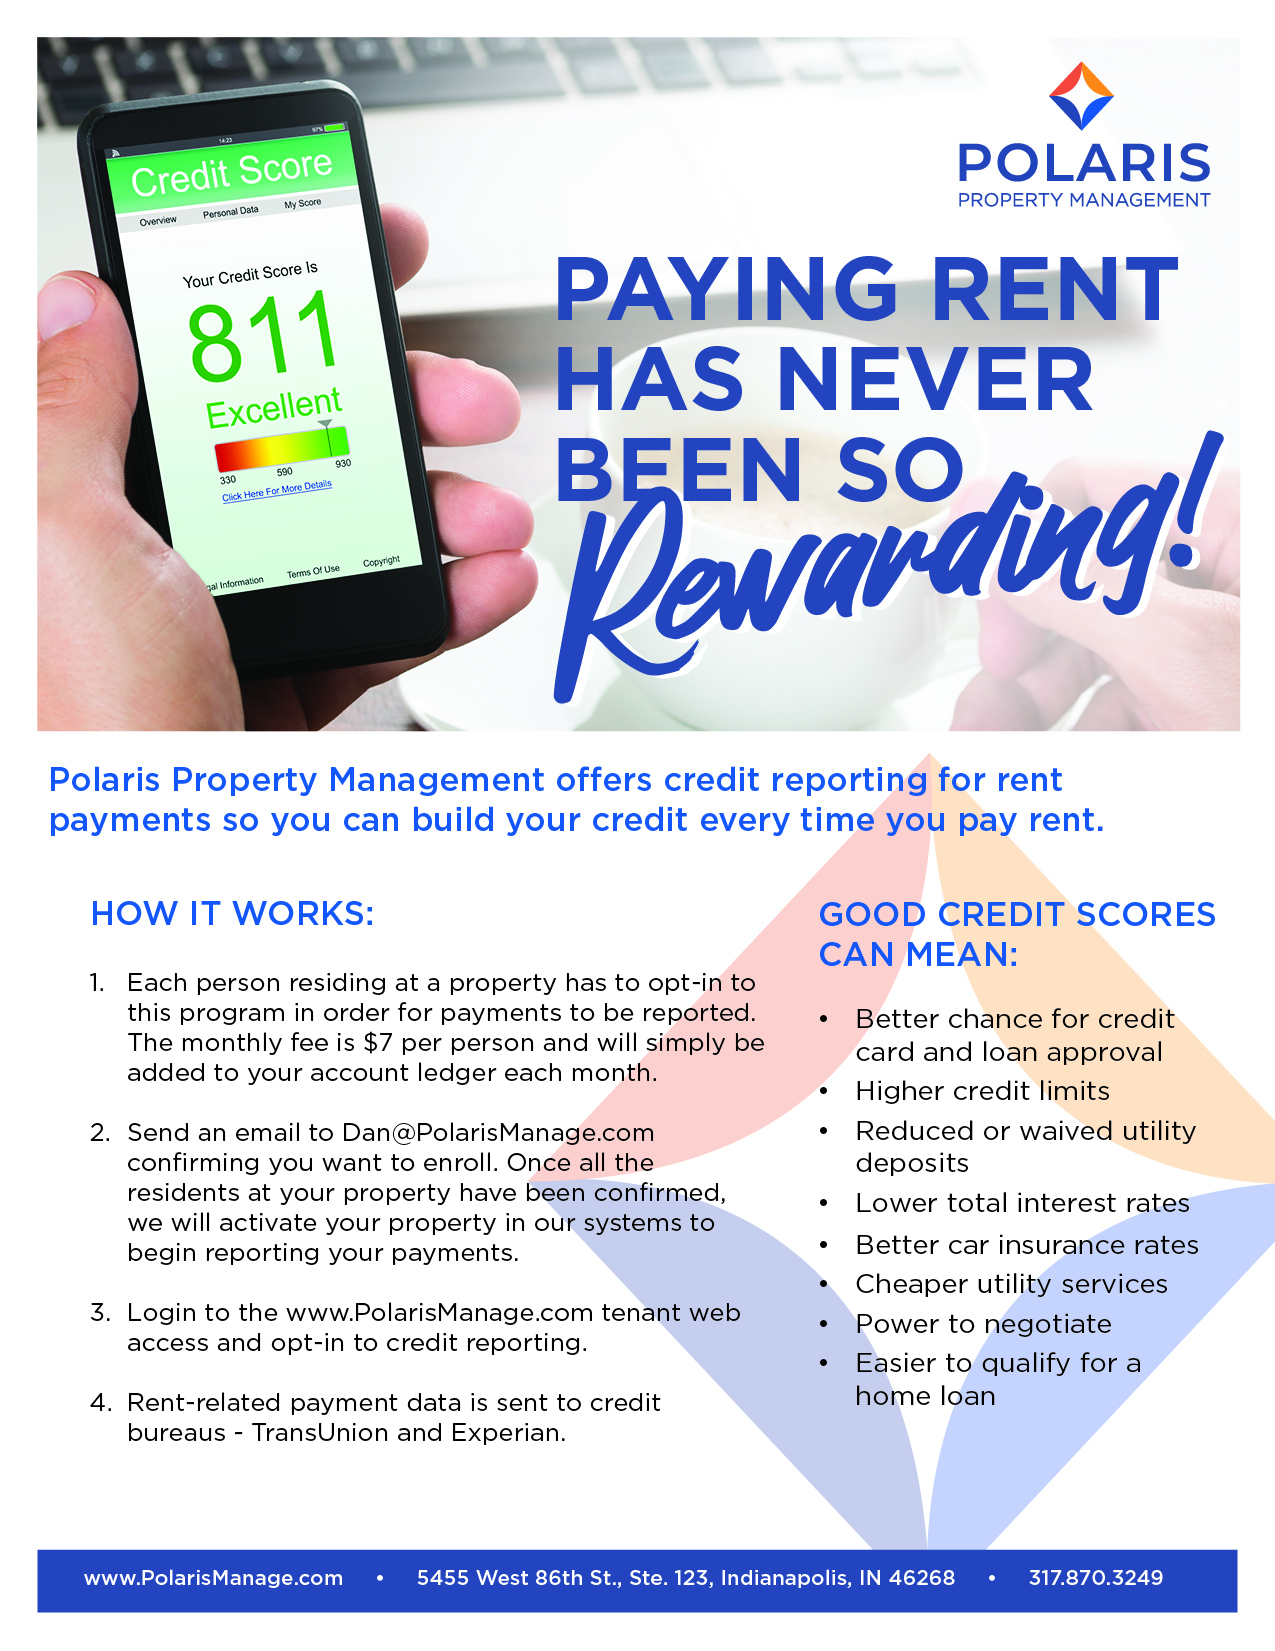 PPM Improve Your Credit Score